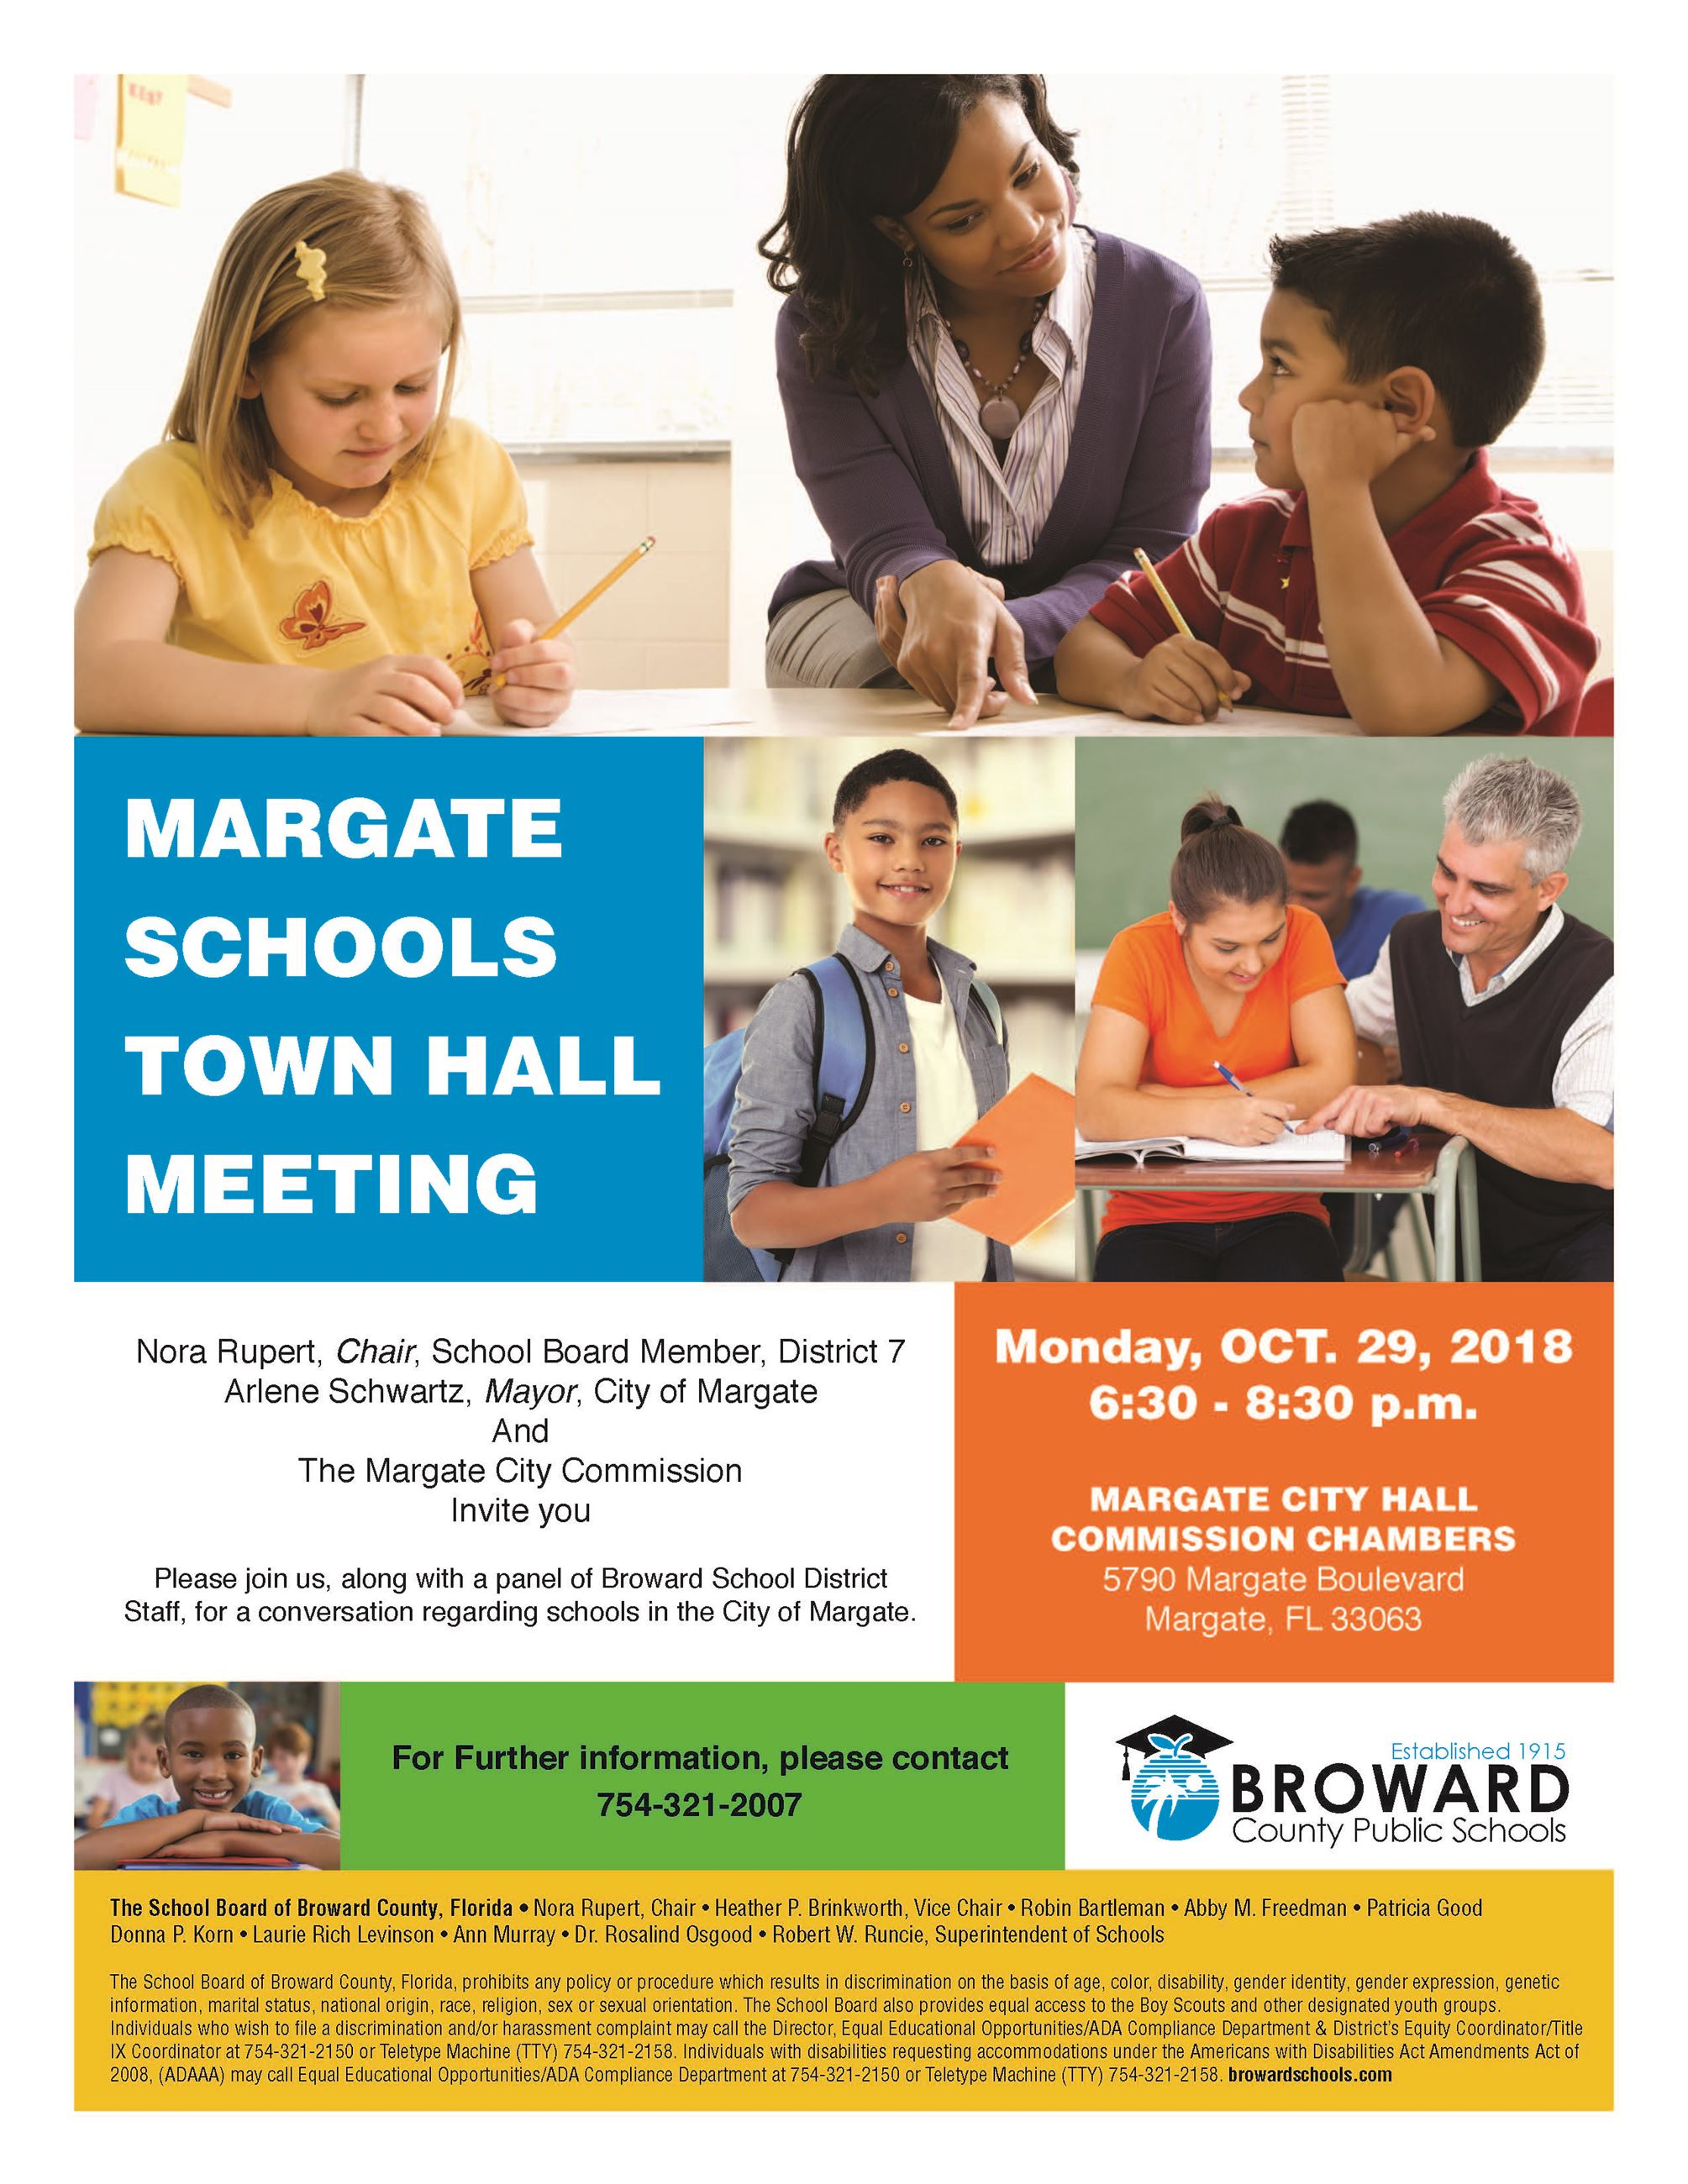 Margate School Meeting on October 29th